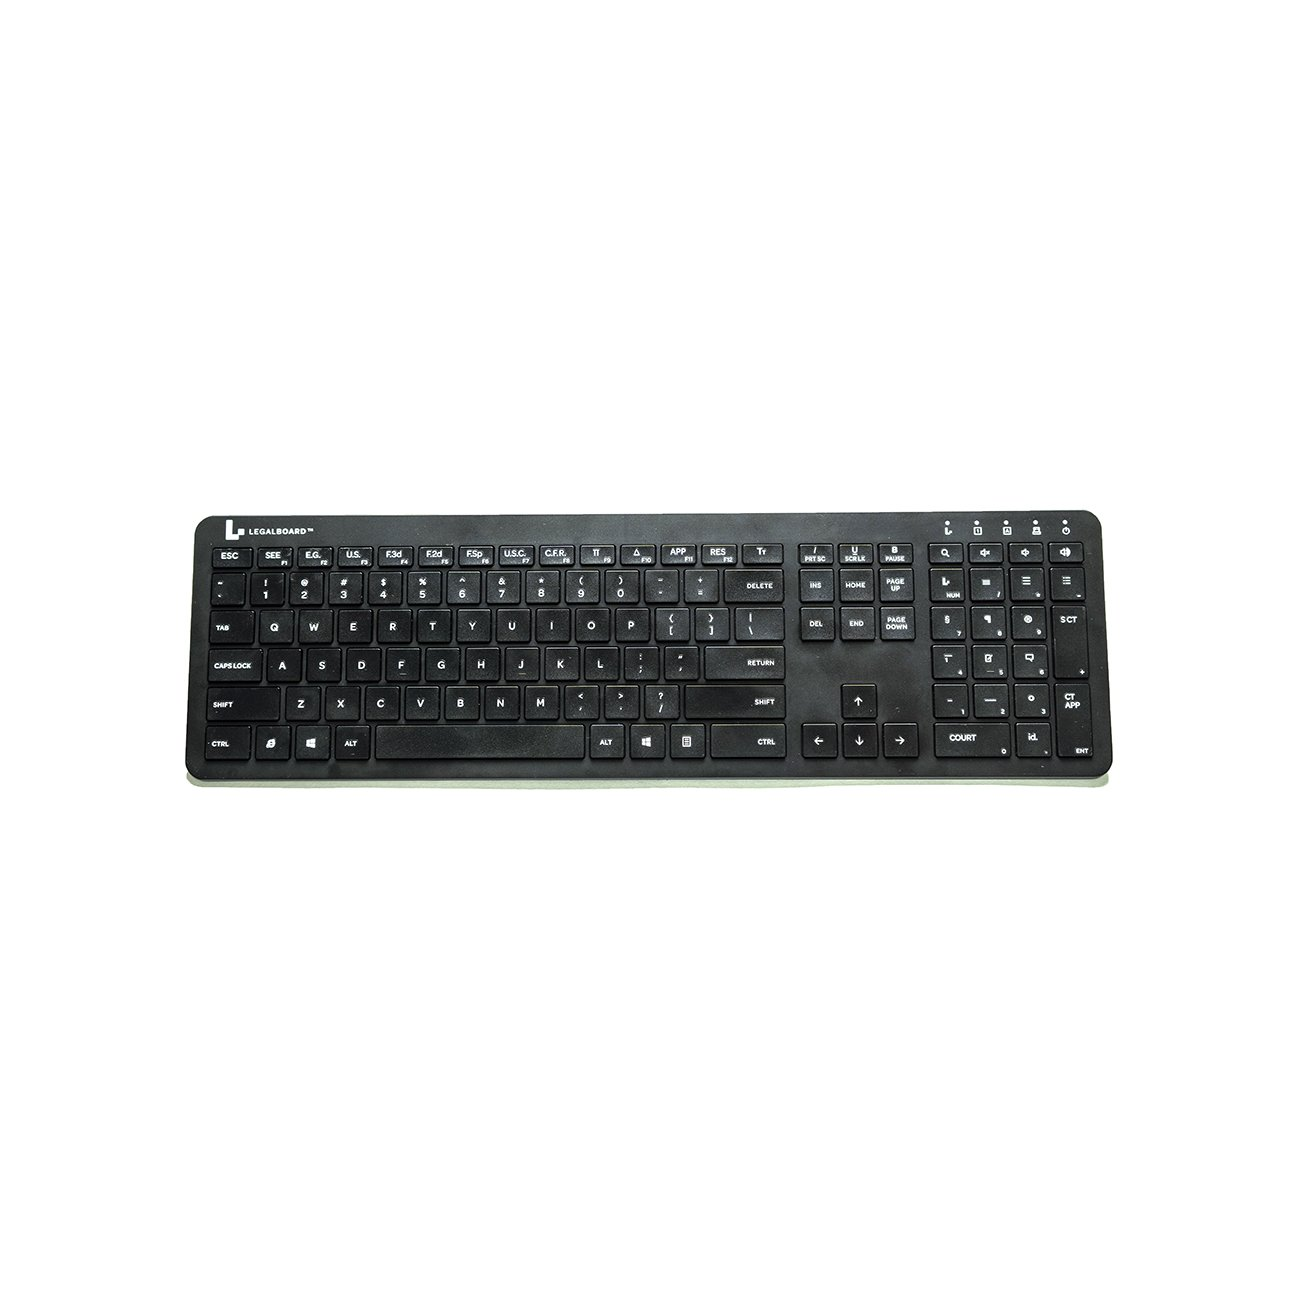 LegalBoard Legal Keyboard - Wireless Version